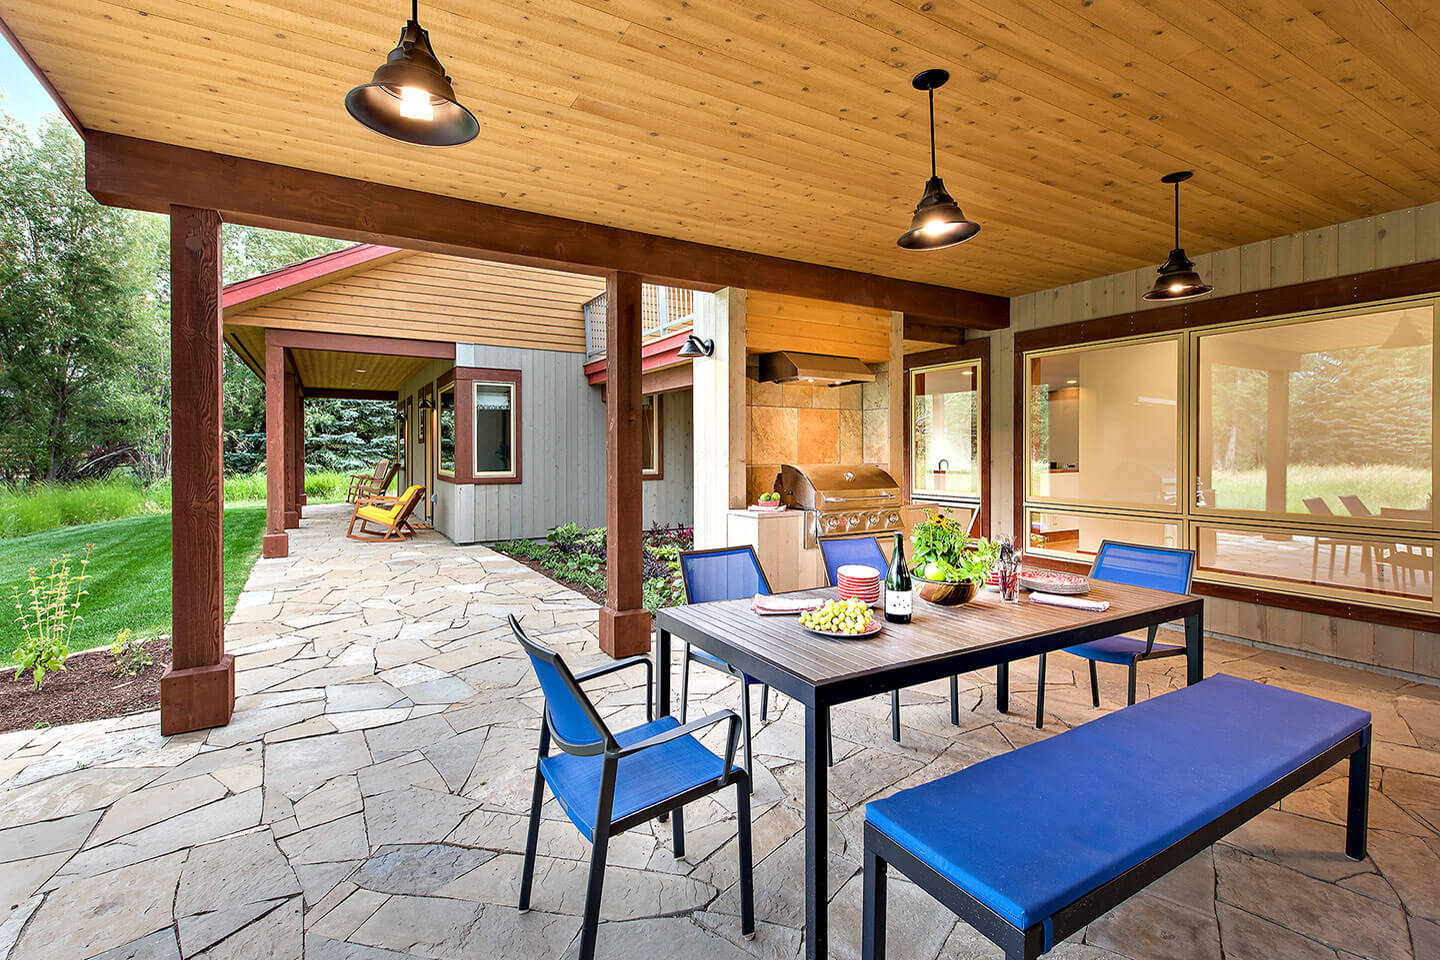 Stone patio and covered outdoor dining area